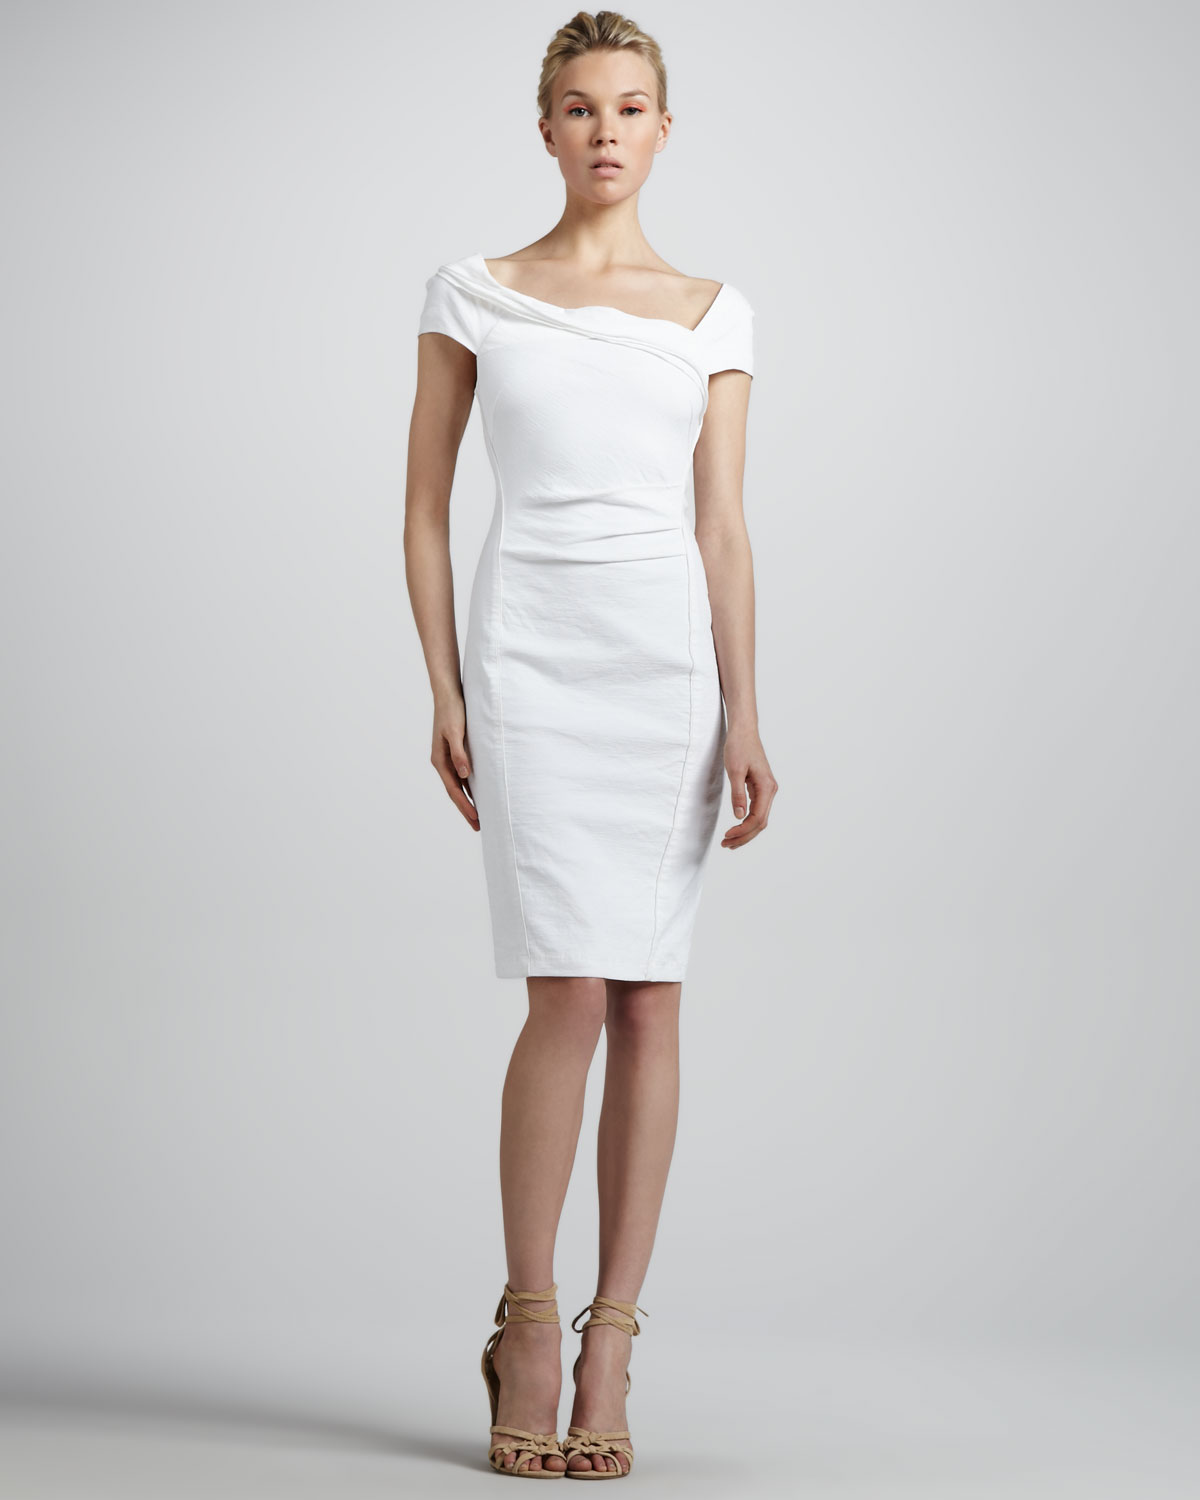 Donna karan Draped Stretch-Jersey Dress in White | Lyst